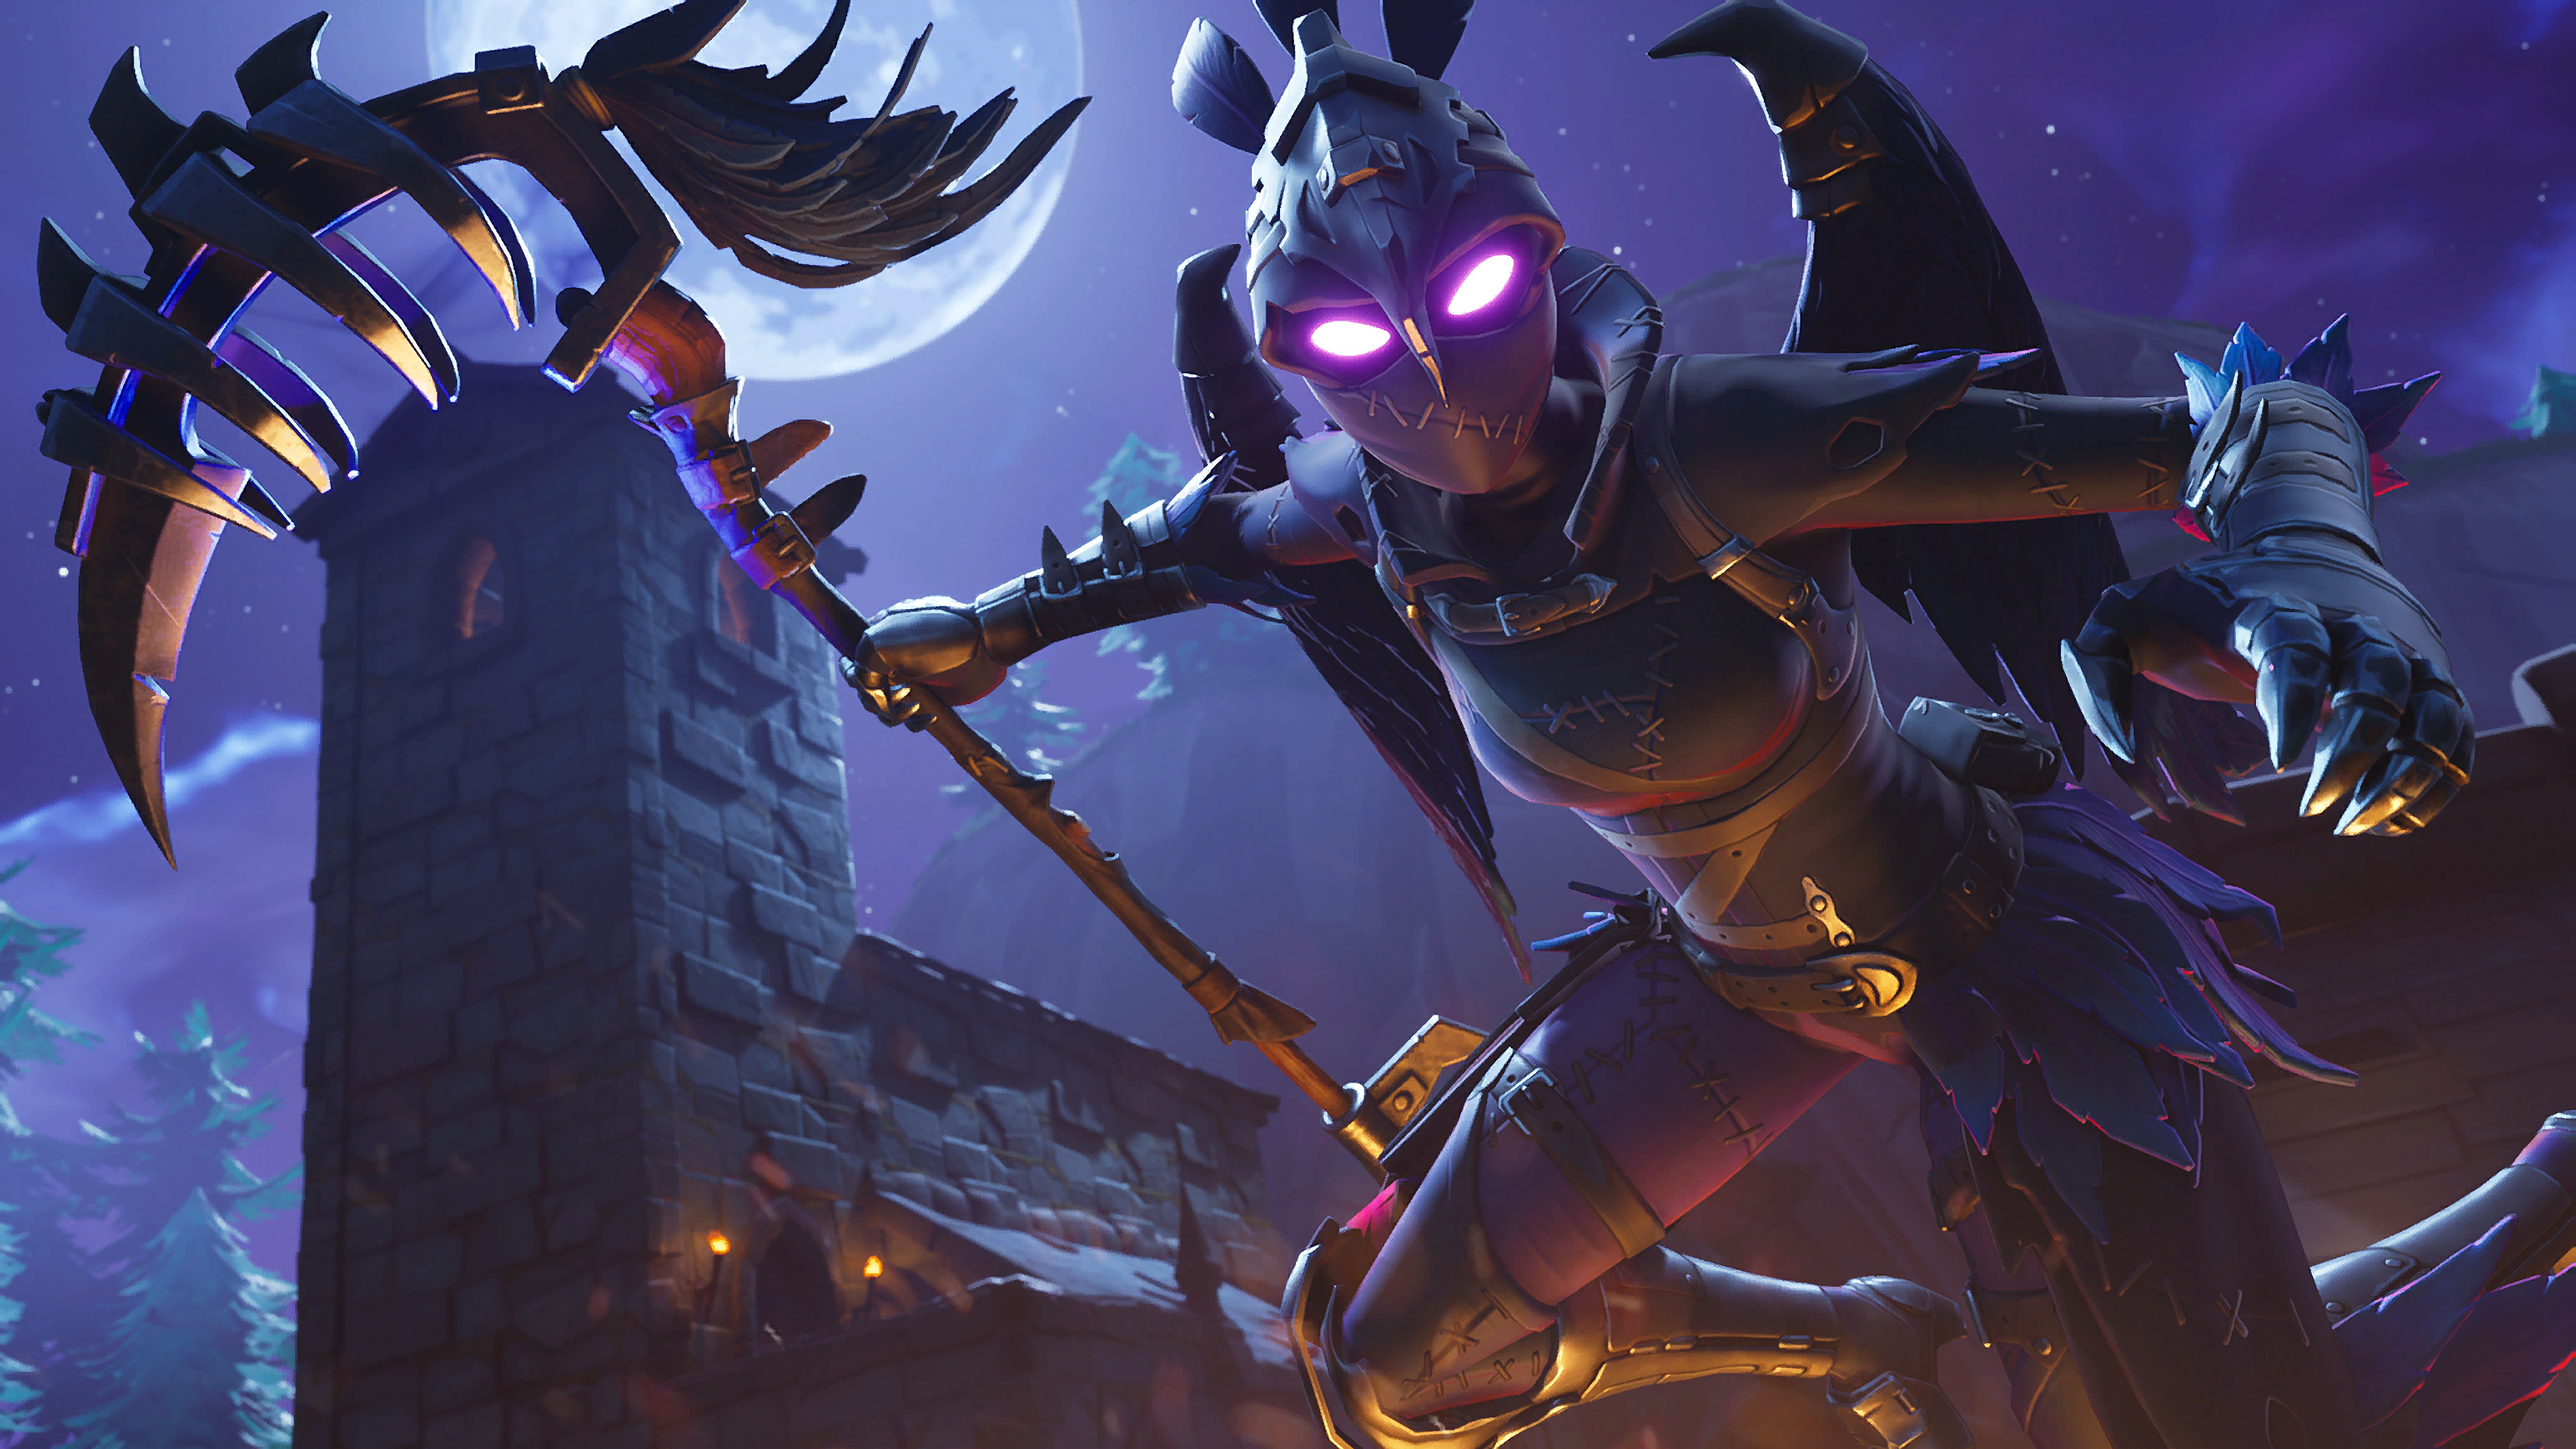 Gaming Wallpapers 4k Fortnite 2 Quotes